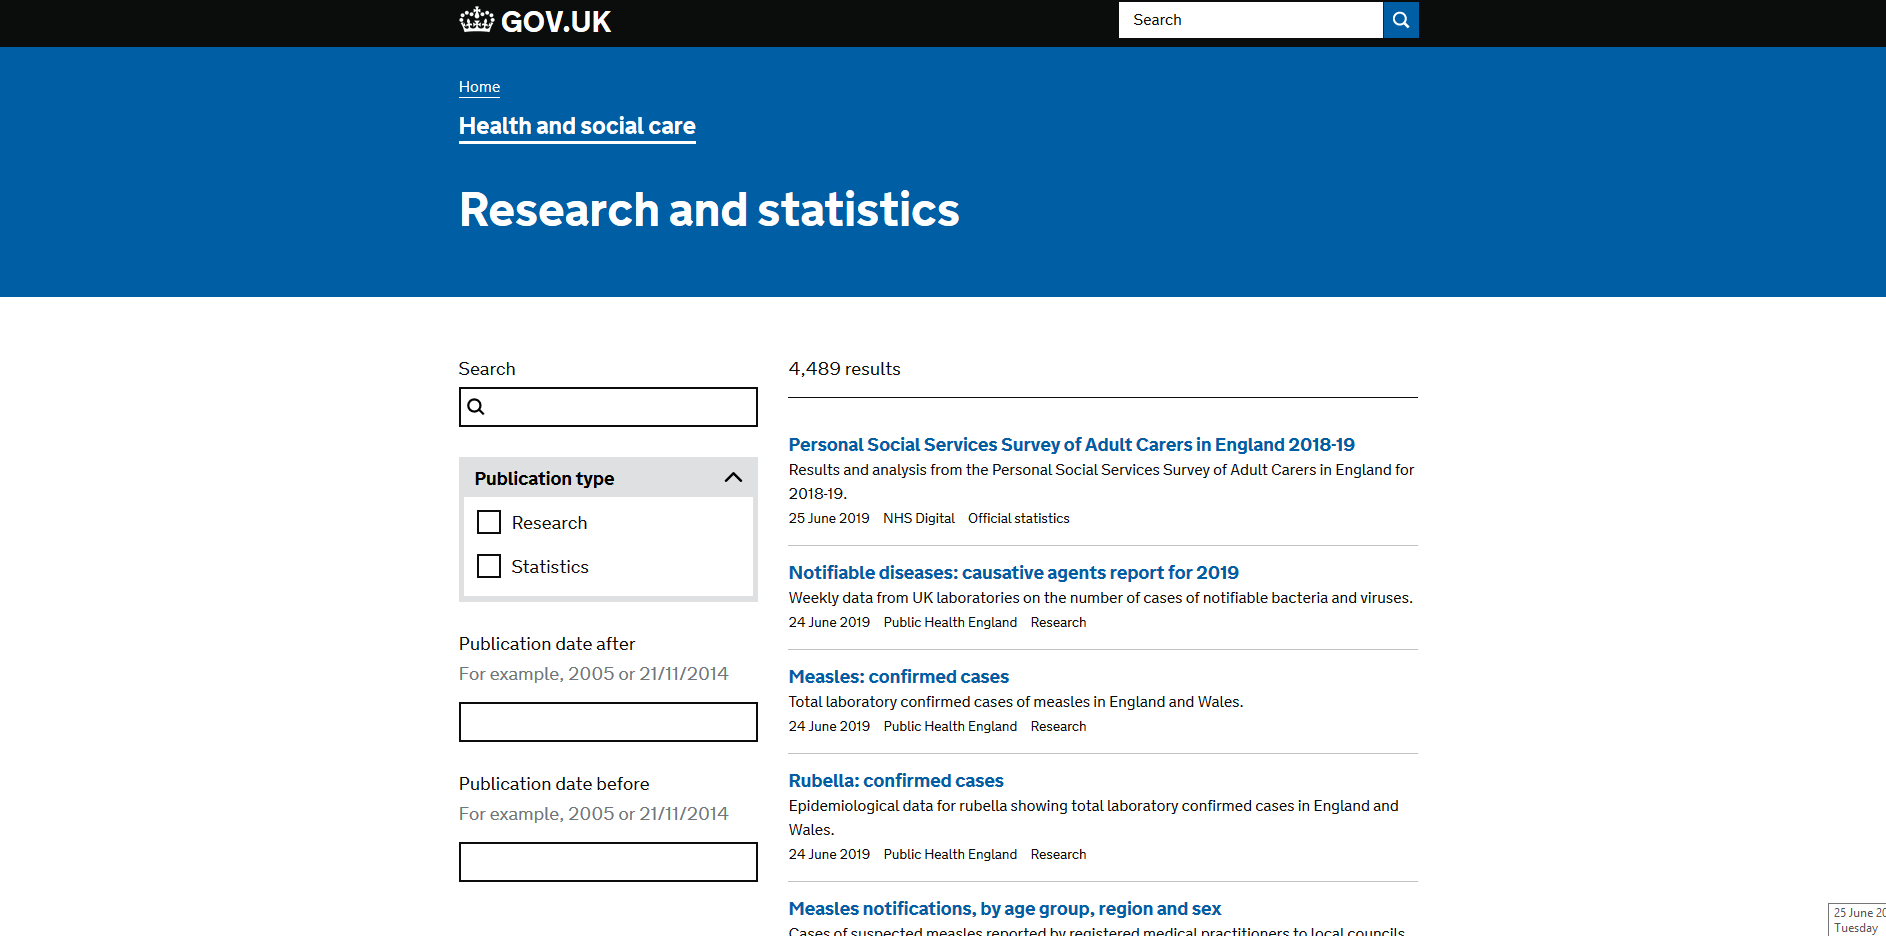 Department of Health and Social Care Guidance and regulation Research and statistics